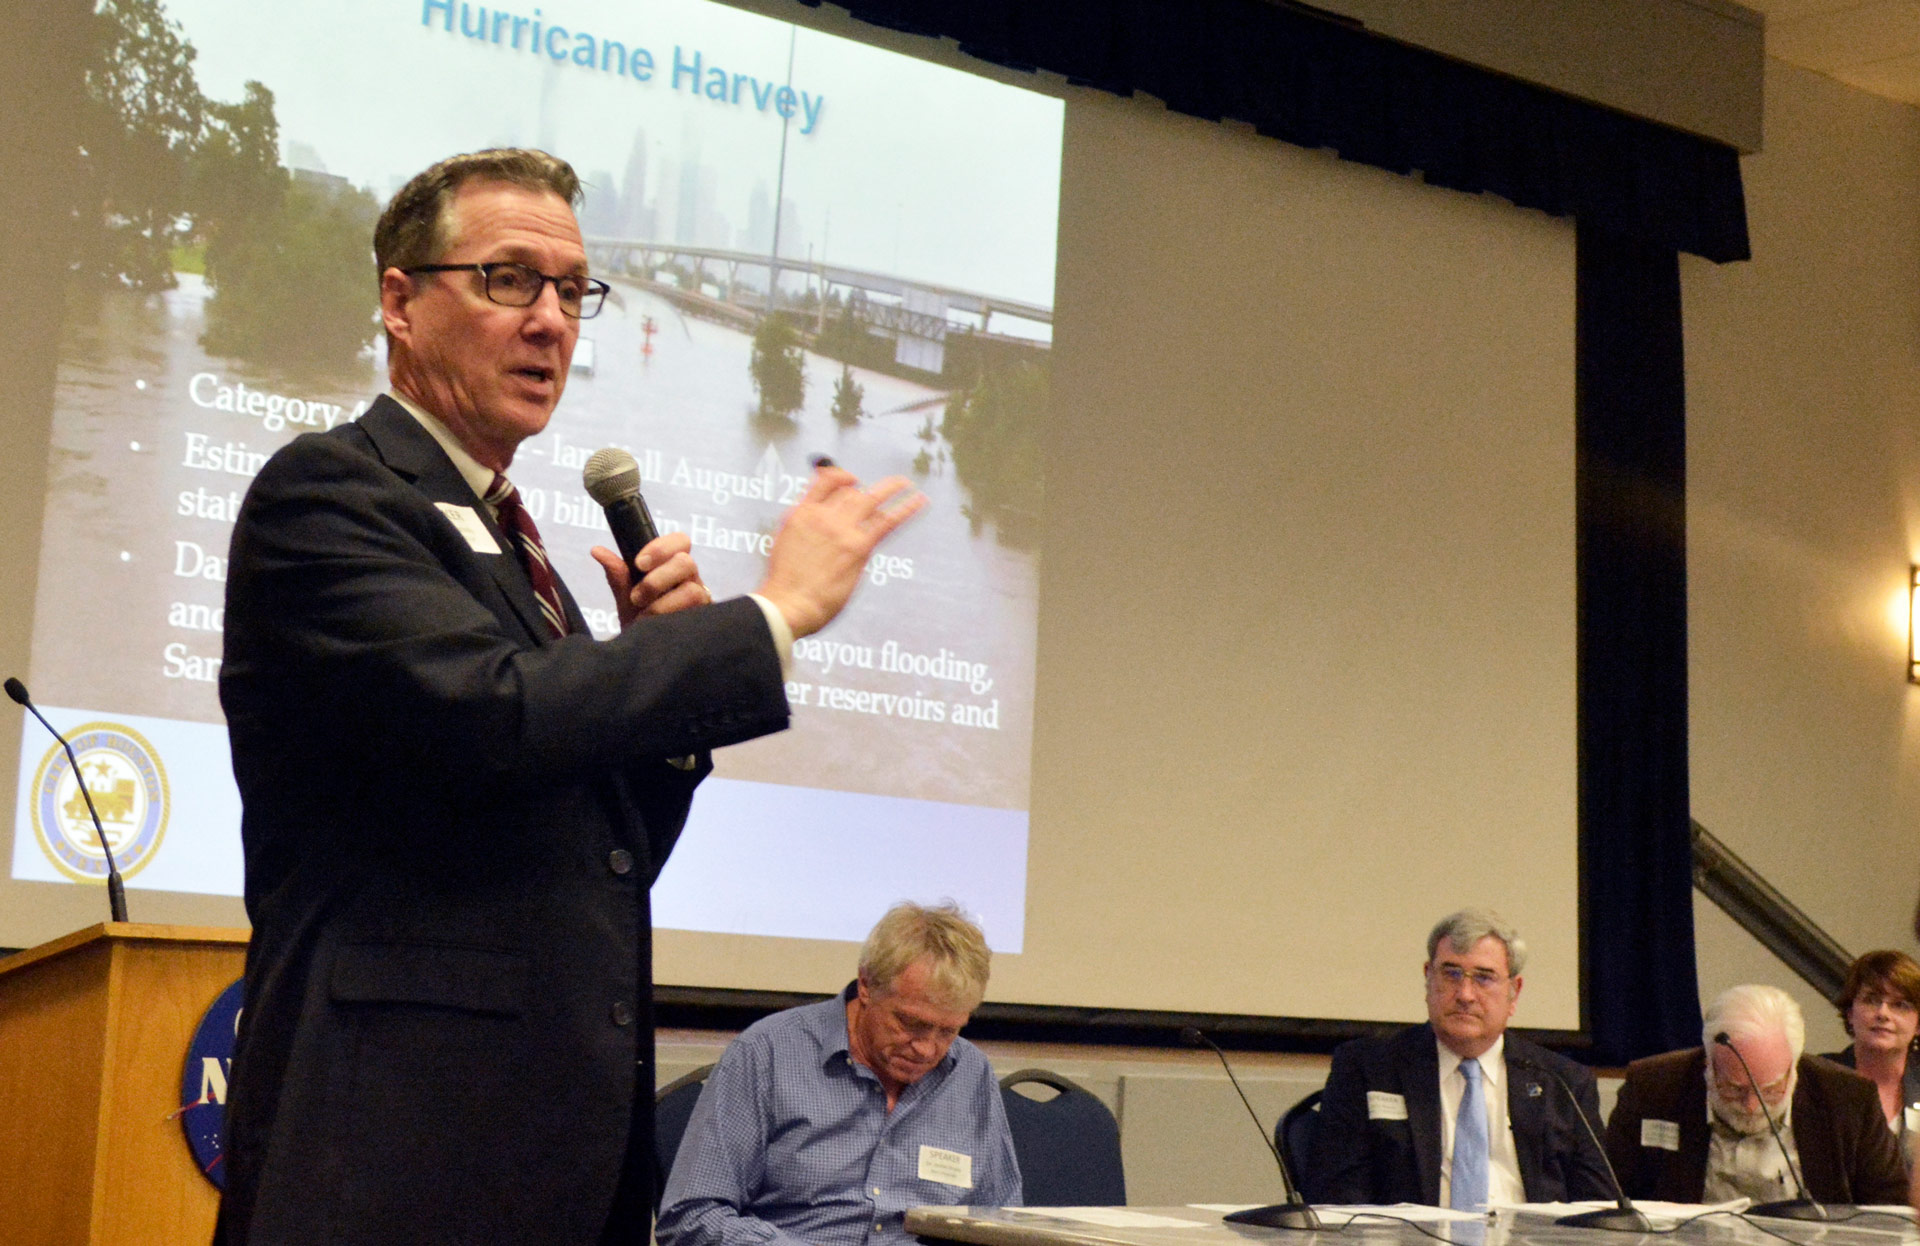 Flood experts discuss challenges, solutions in Bay Area forum